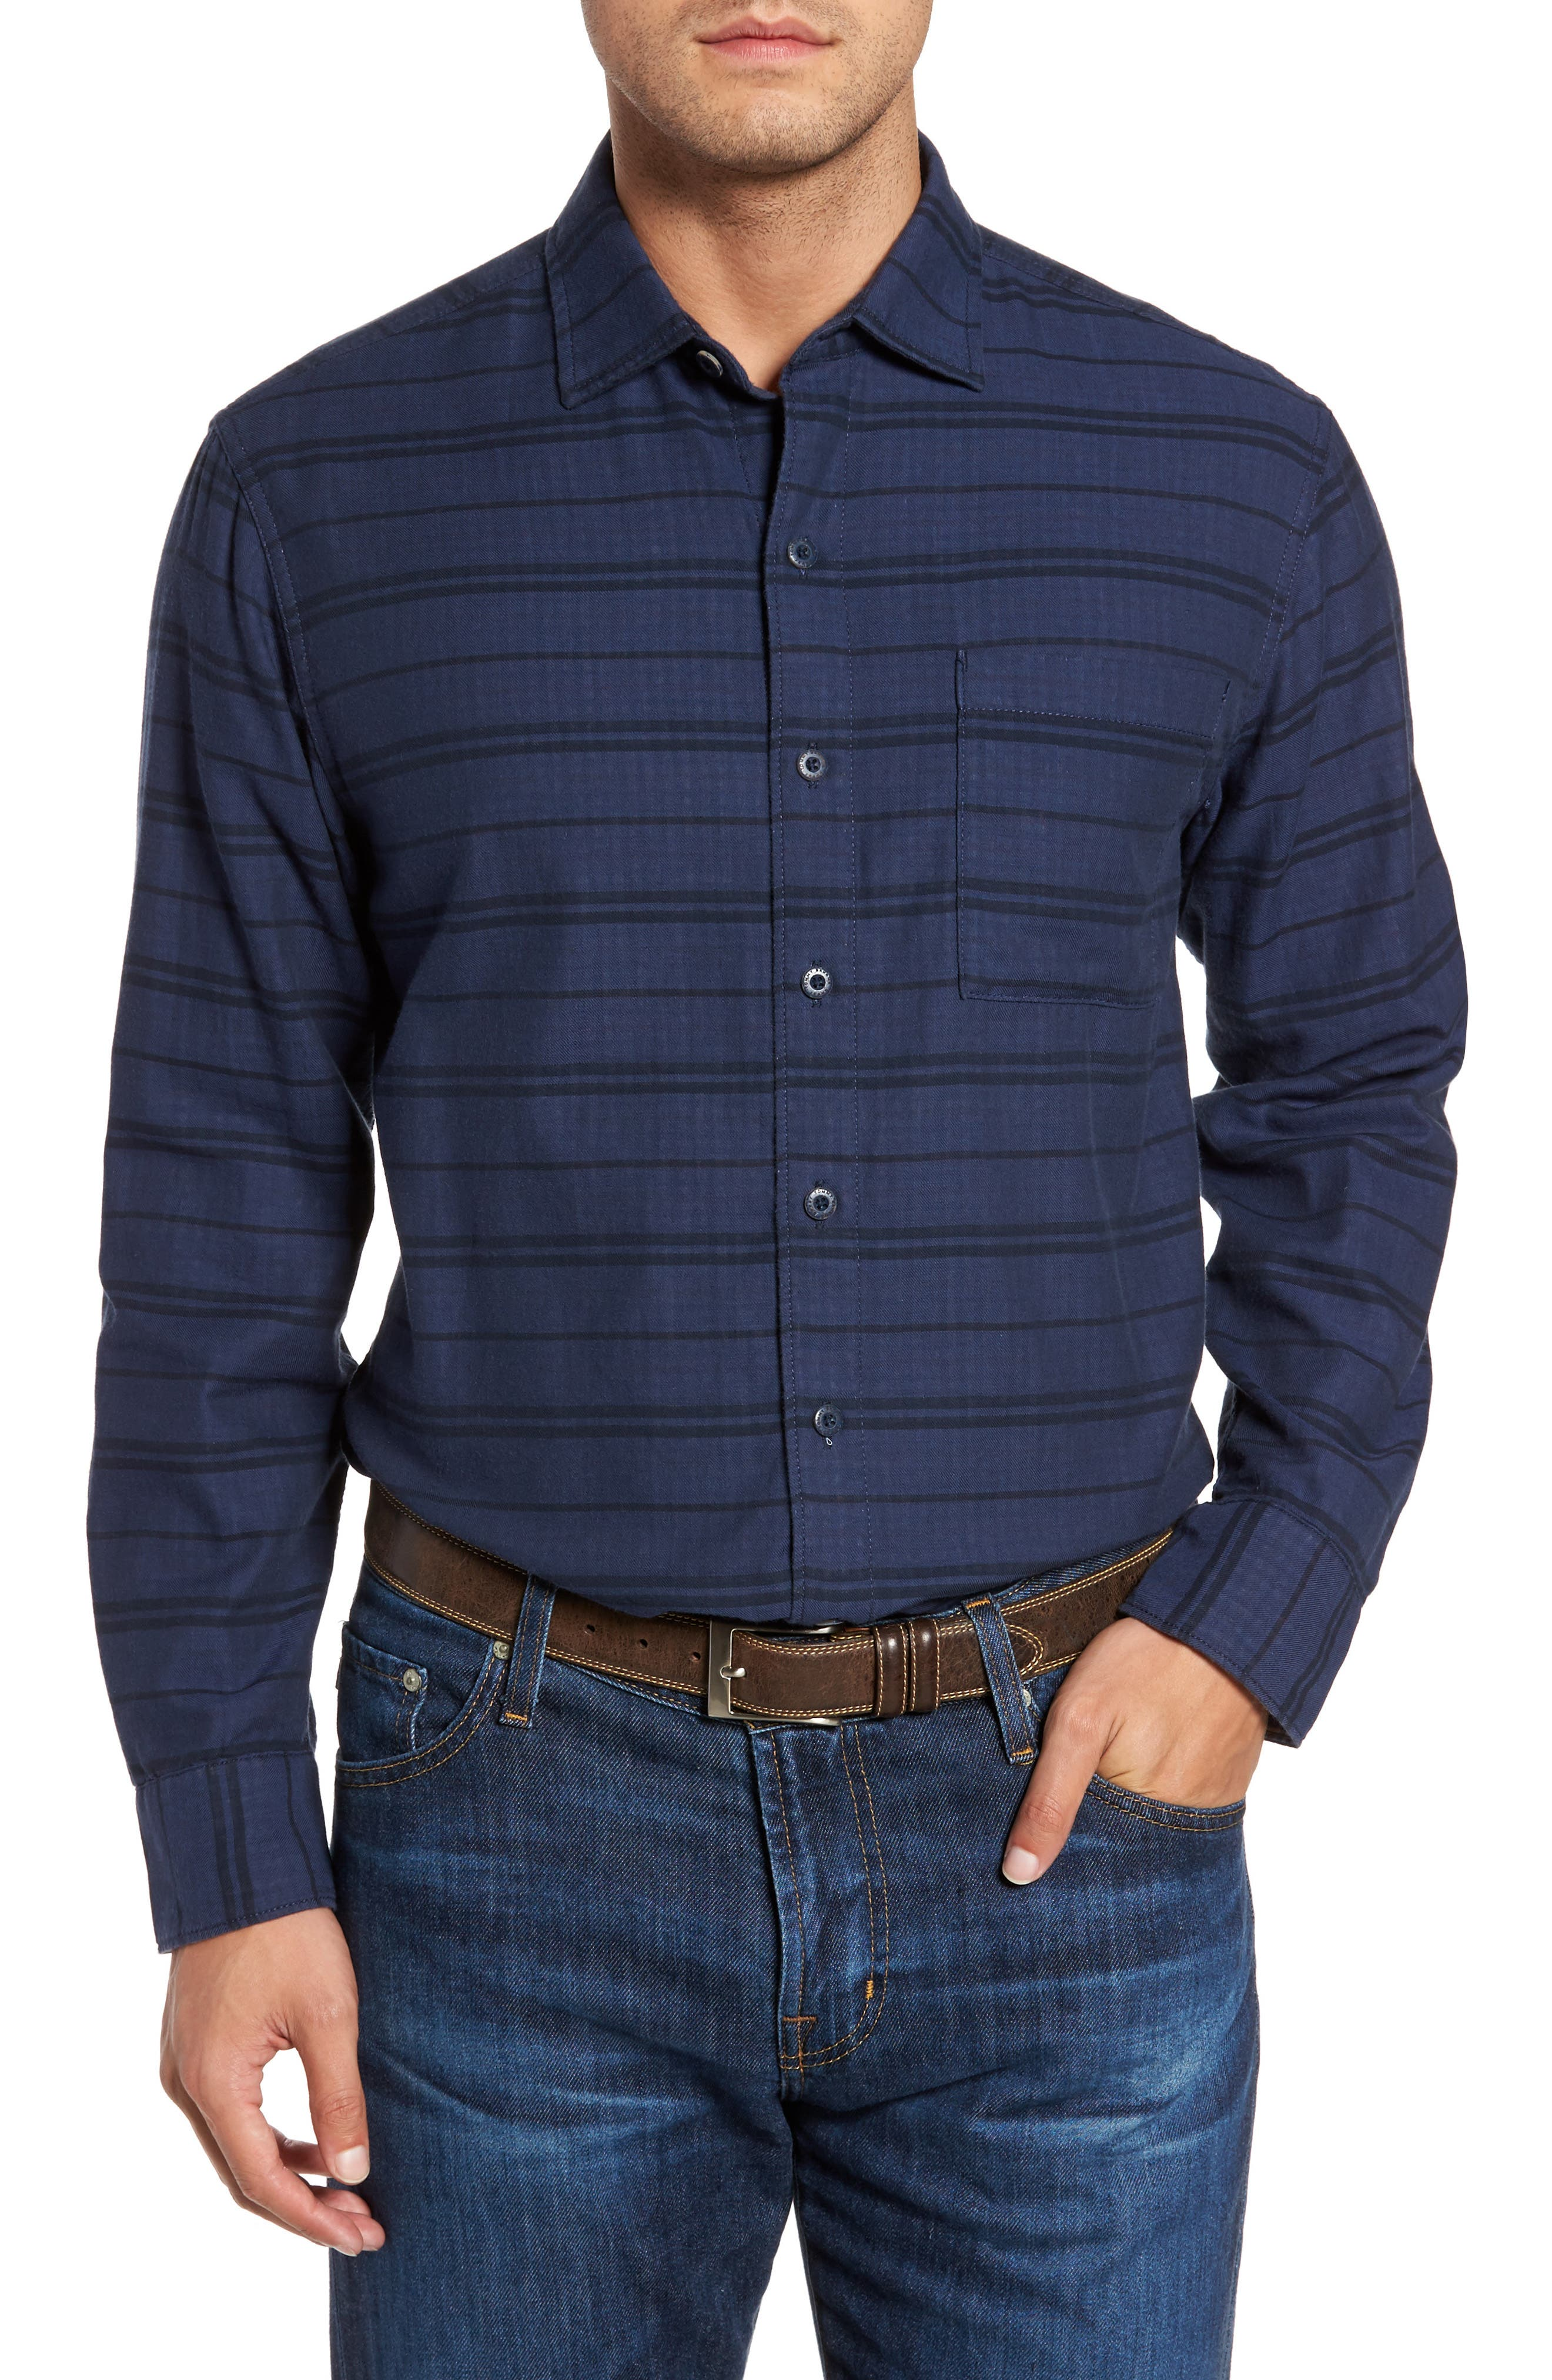 Alternate Image 1 Selected - Tommy Bahama Tan Tan Stripe Standard Fit Sport Shirt